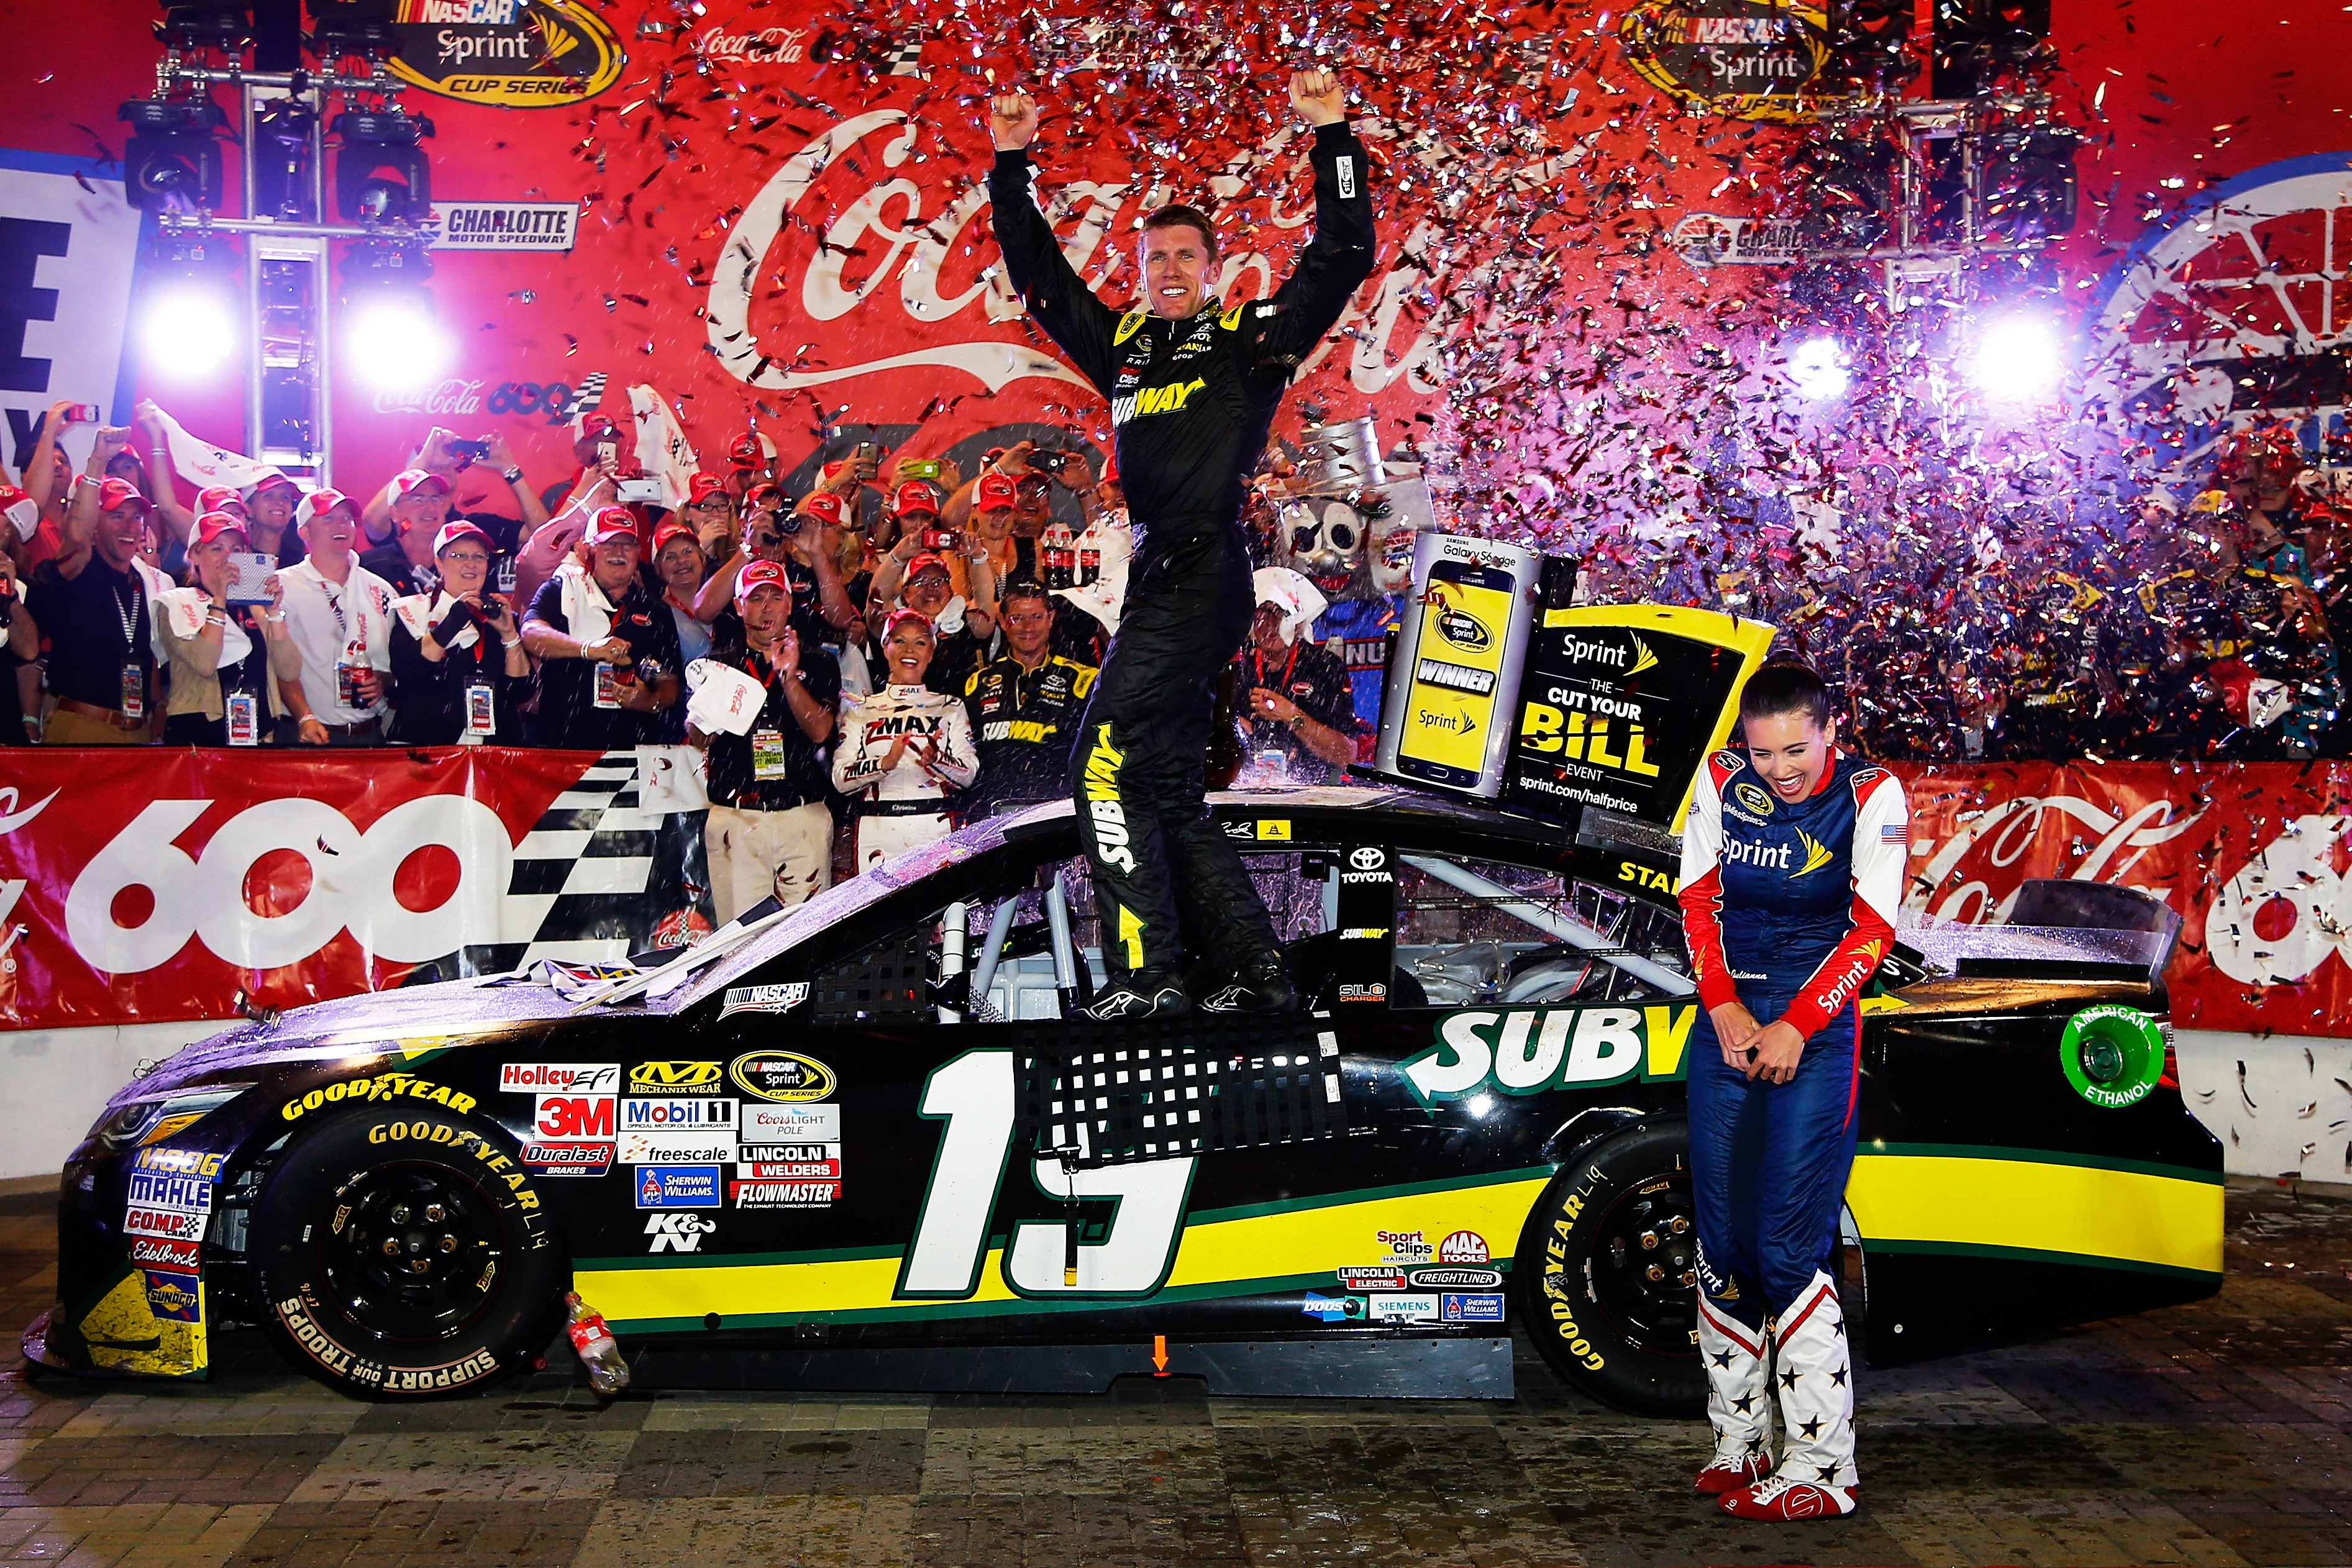 Carl edwards flips again after winning the 56th annual for Charlotte motor speedway drag racing